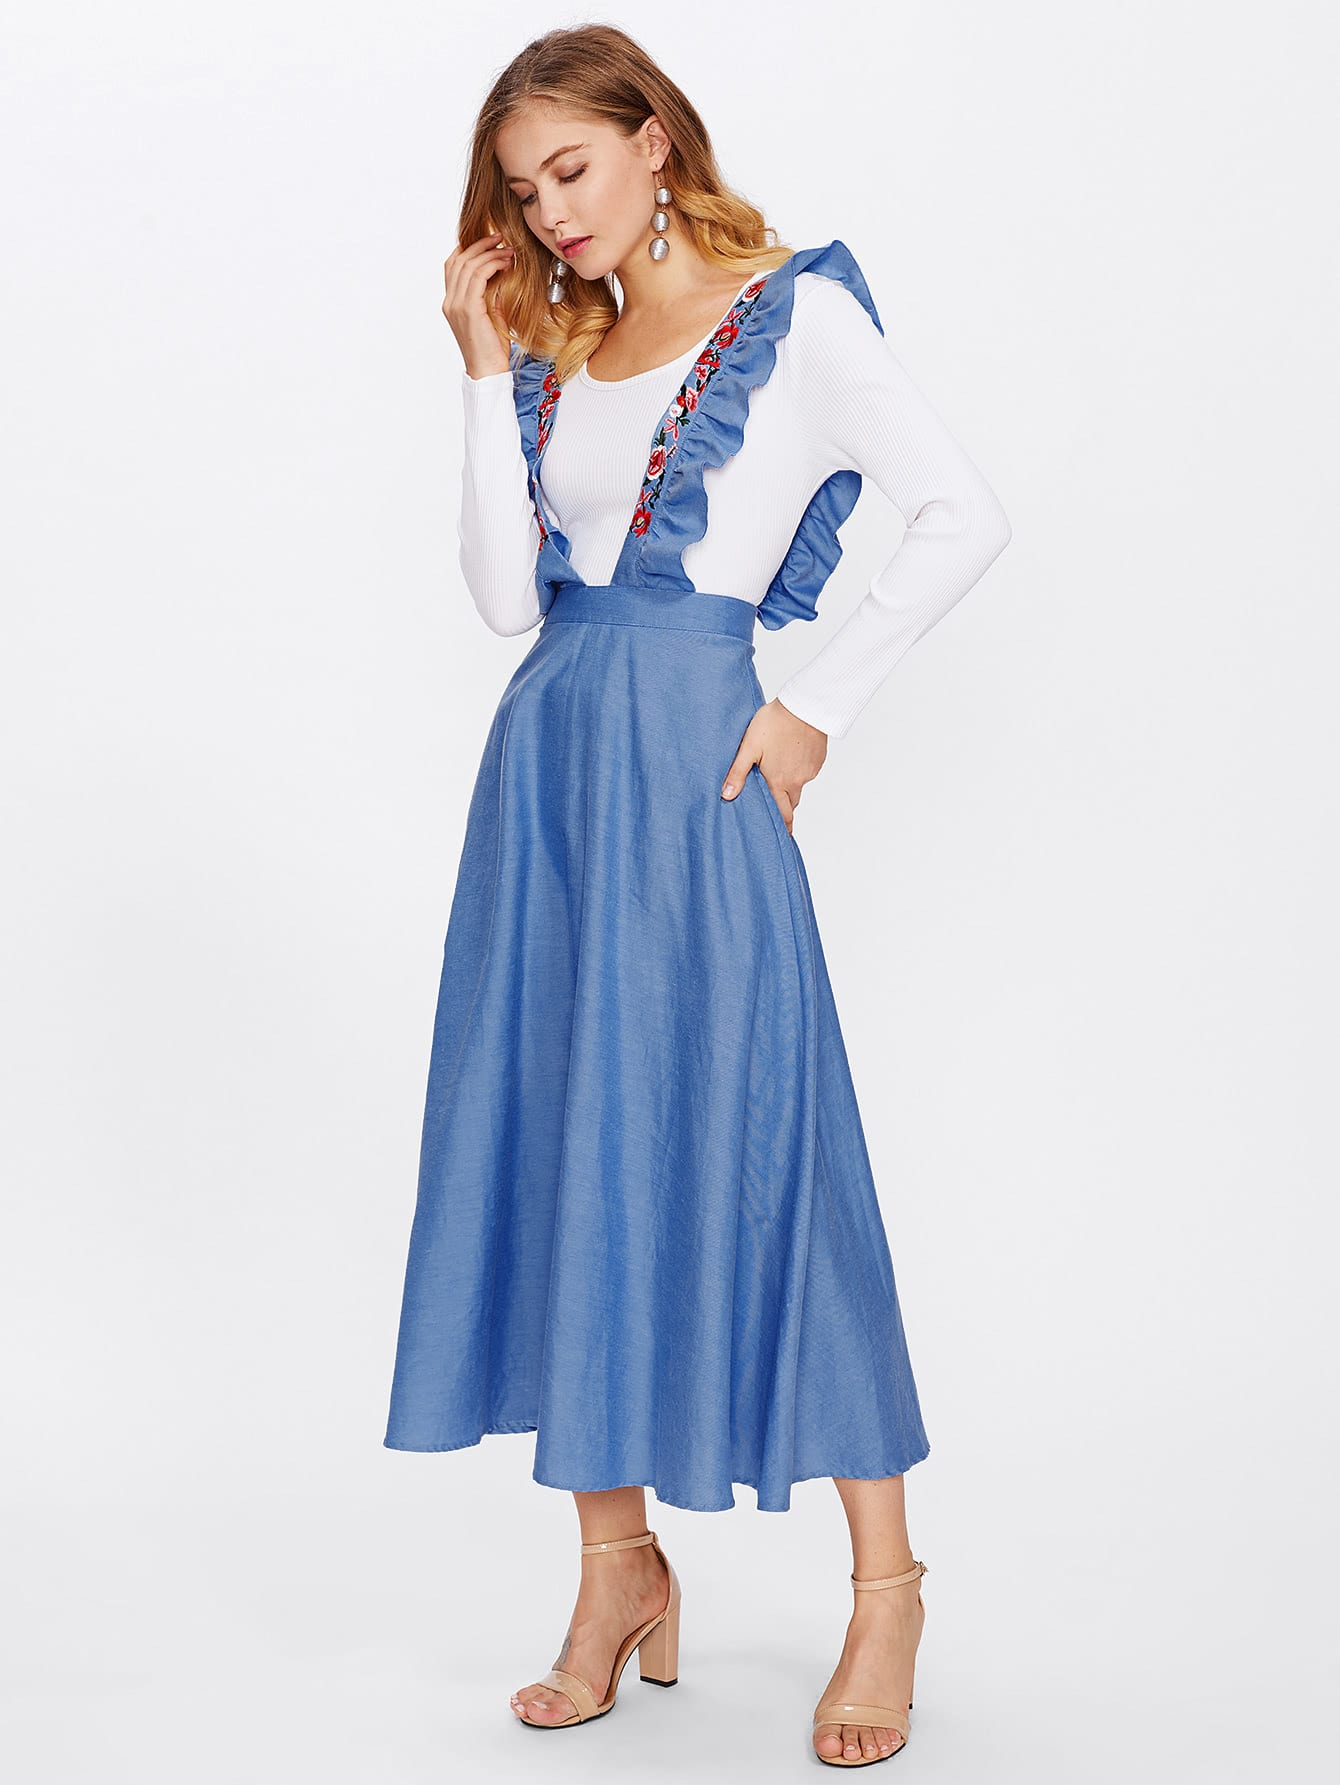 Chambray Skirt With Embroidered Ruffle Strap ruffle waist zip back scallop hem embroidered gingham skirt